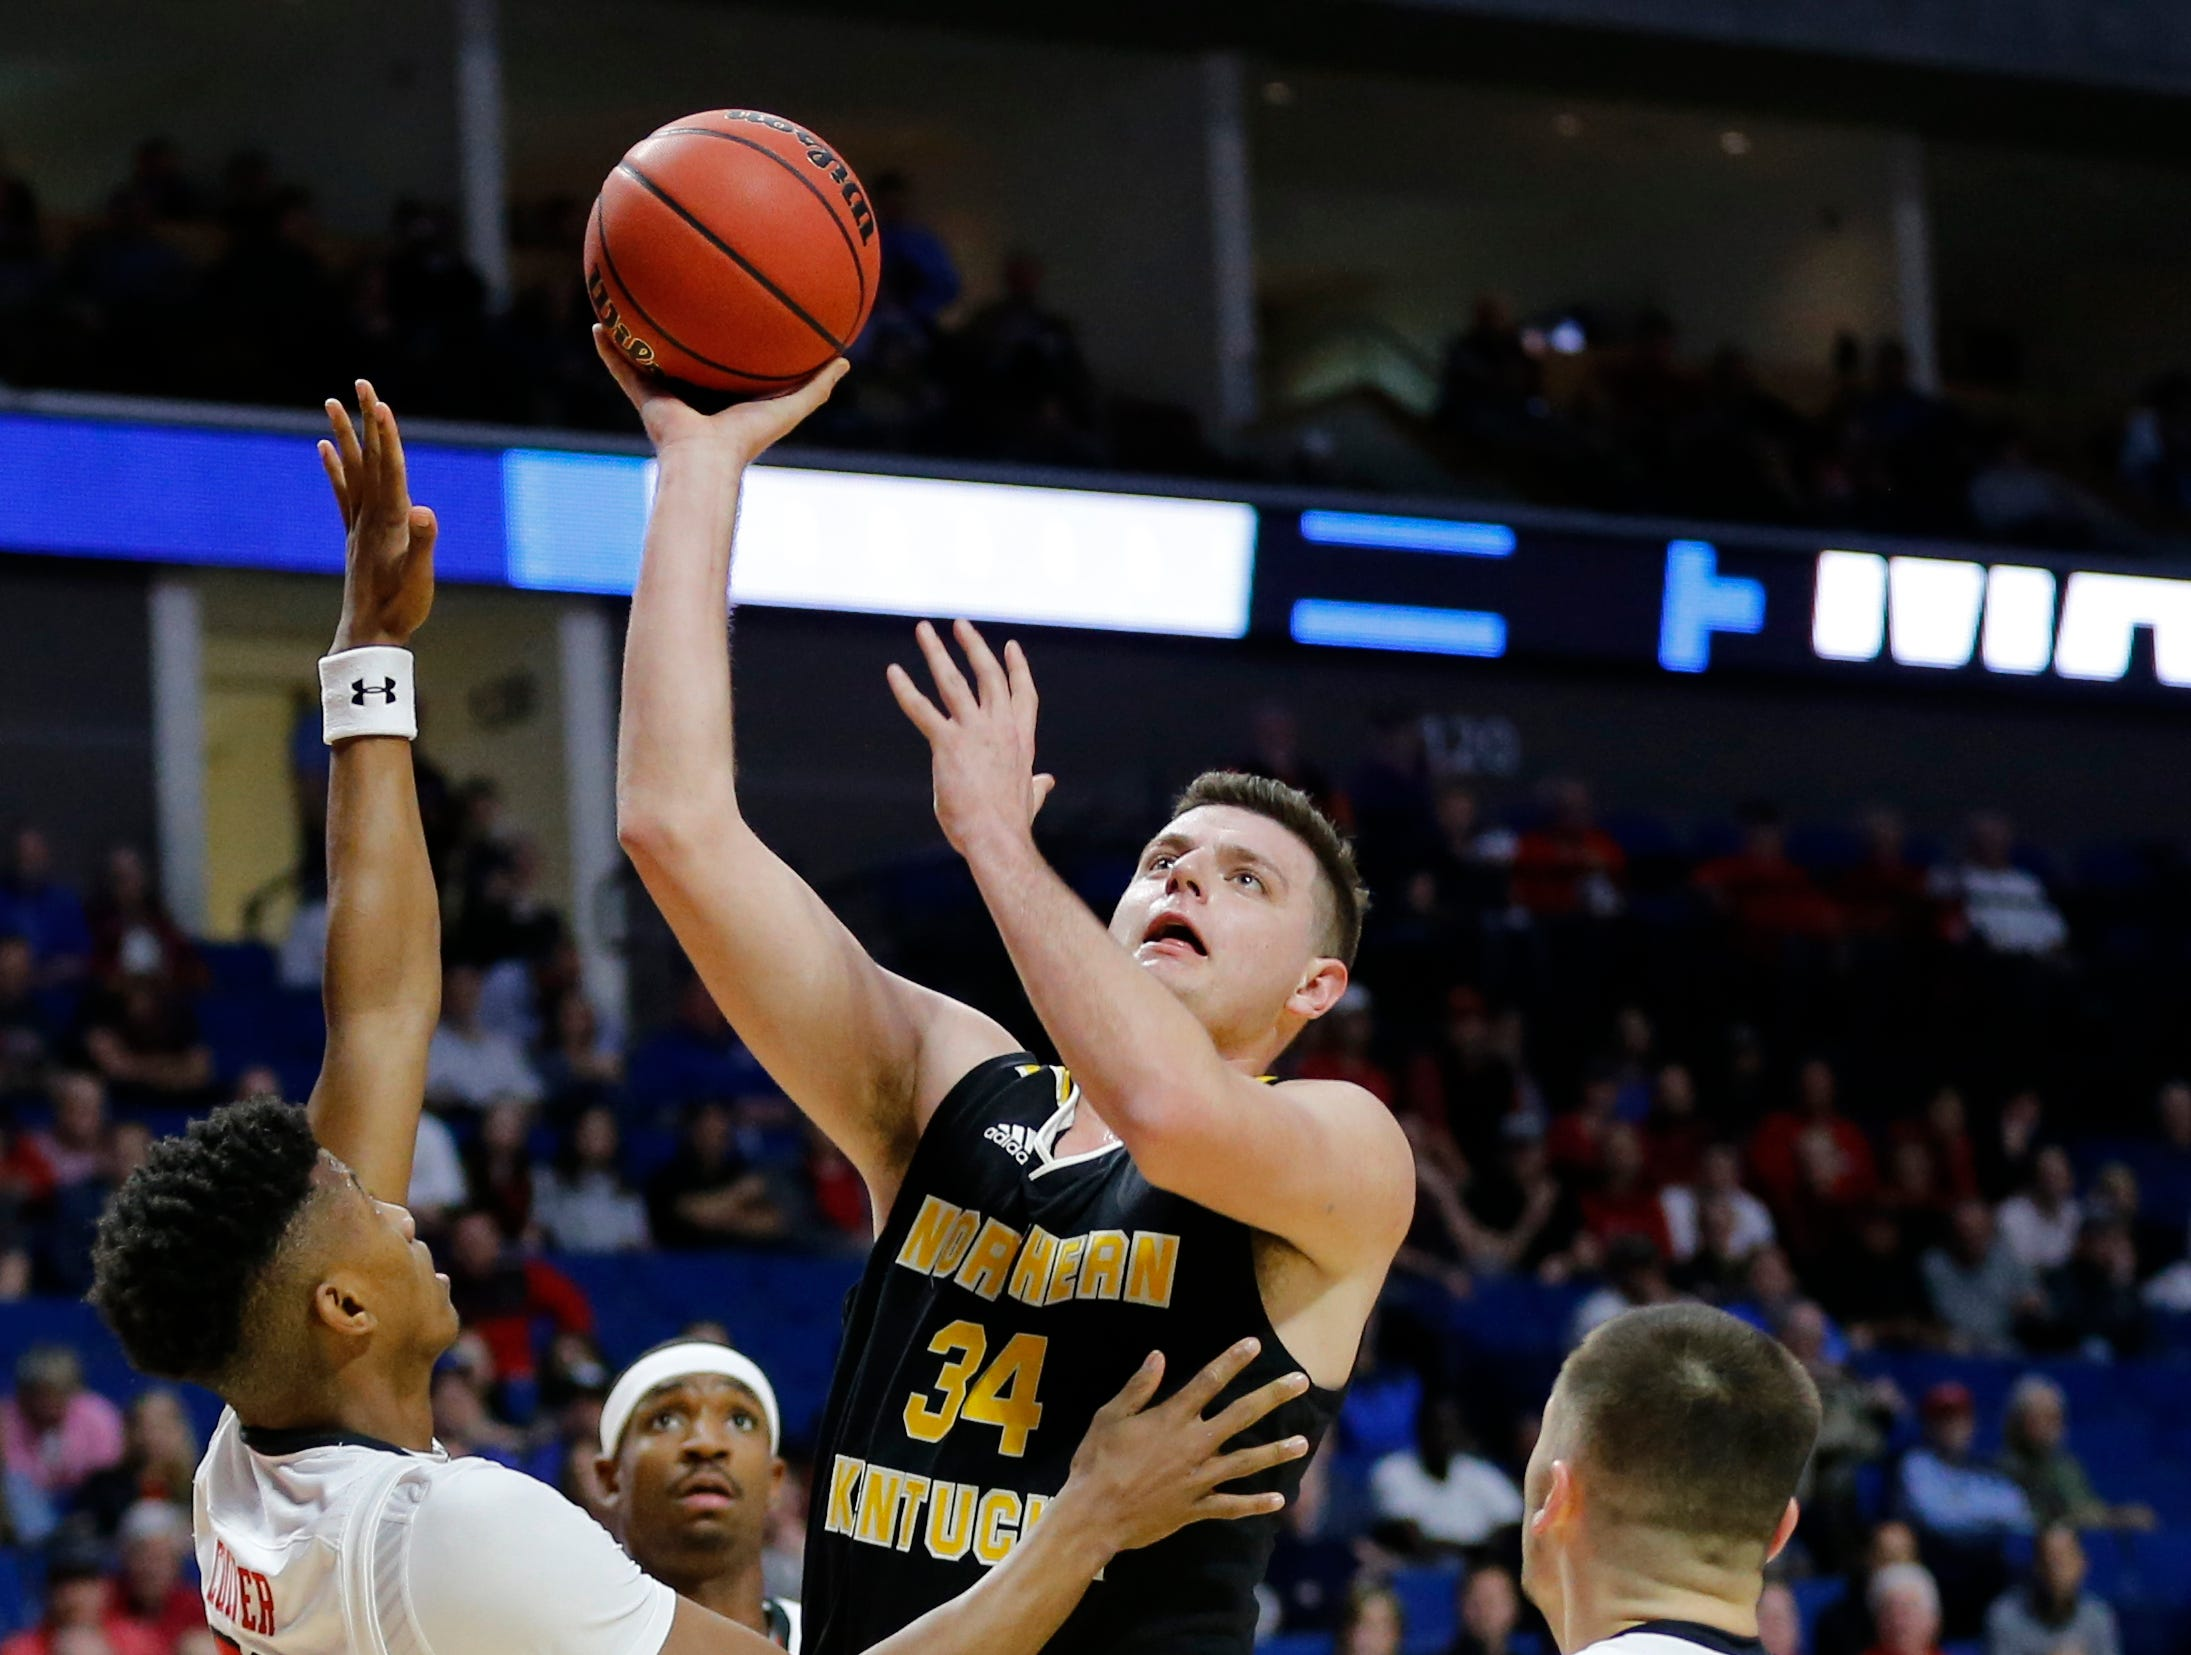 Northern Kentucky Norse forward Drew McDonald (34) attempts a shot in the first half of the NCAA Tournament First Round game between the 14-seeded Northern Kentucky Norse and the 3-seeded Texas Tech Red Raiders the BOK Center in downtown Tulsa on Friday, March 22, 2019. Texas Tech led 30-26 at halftime.